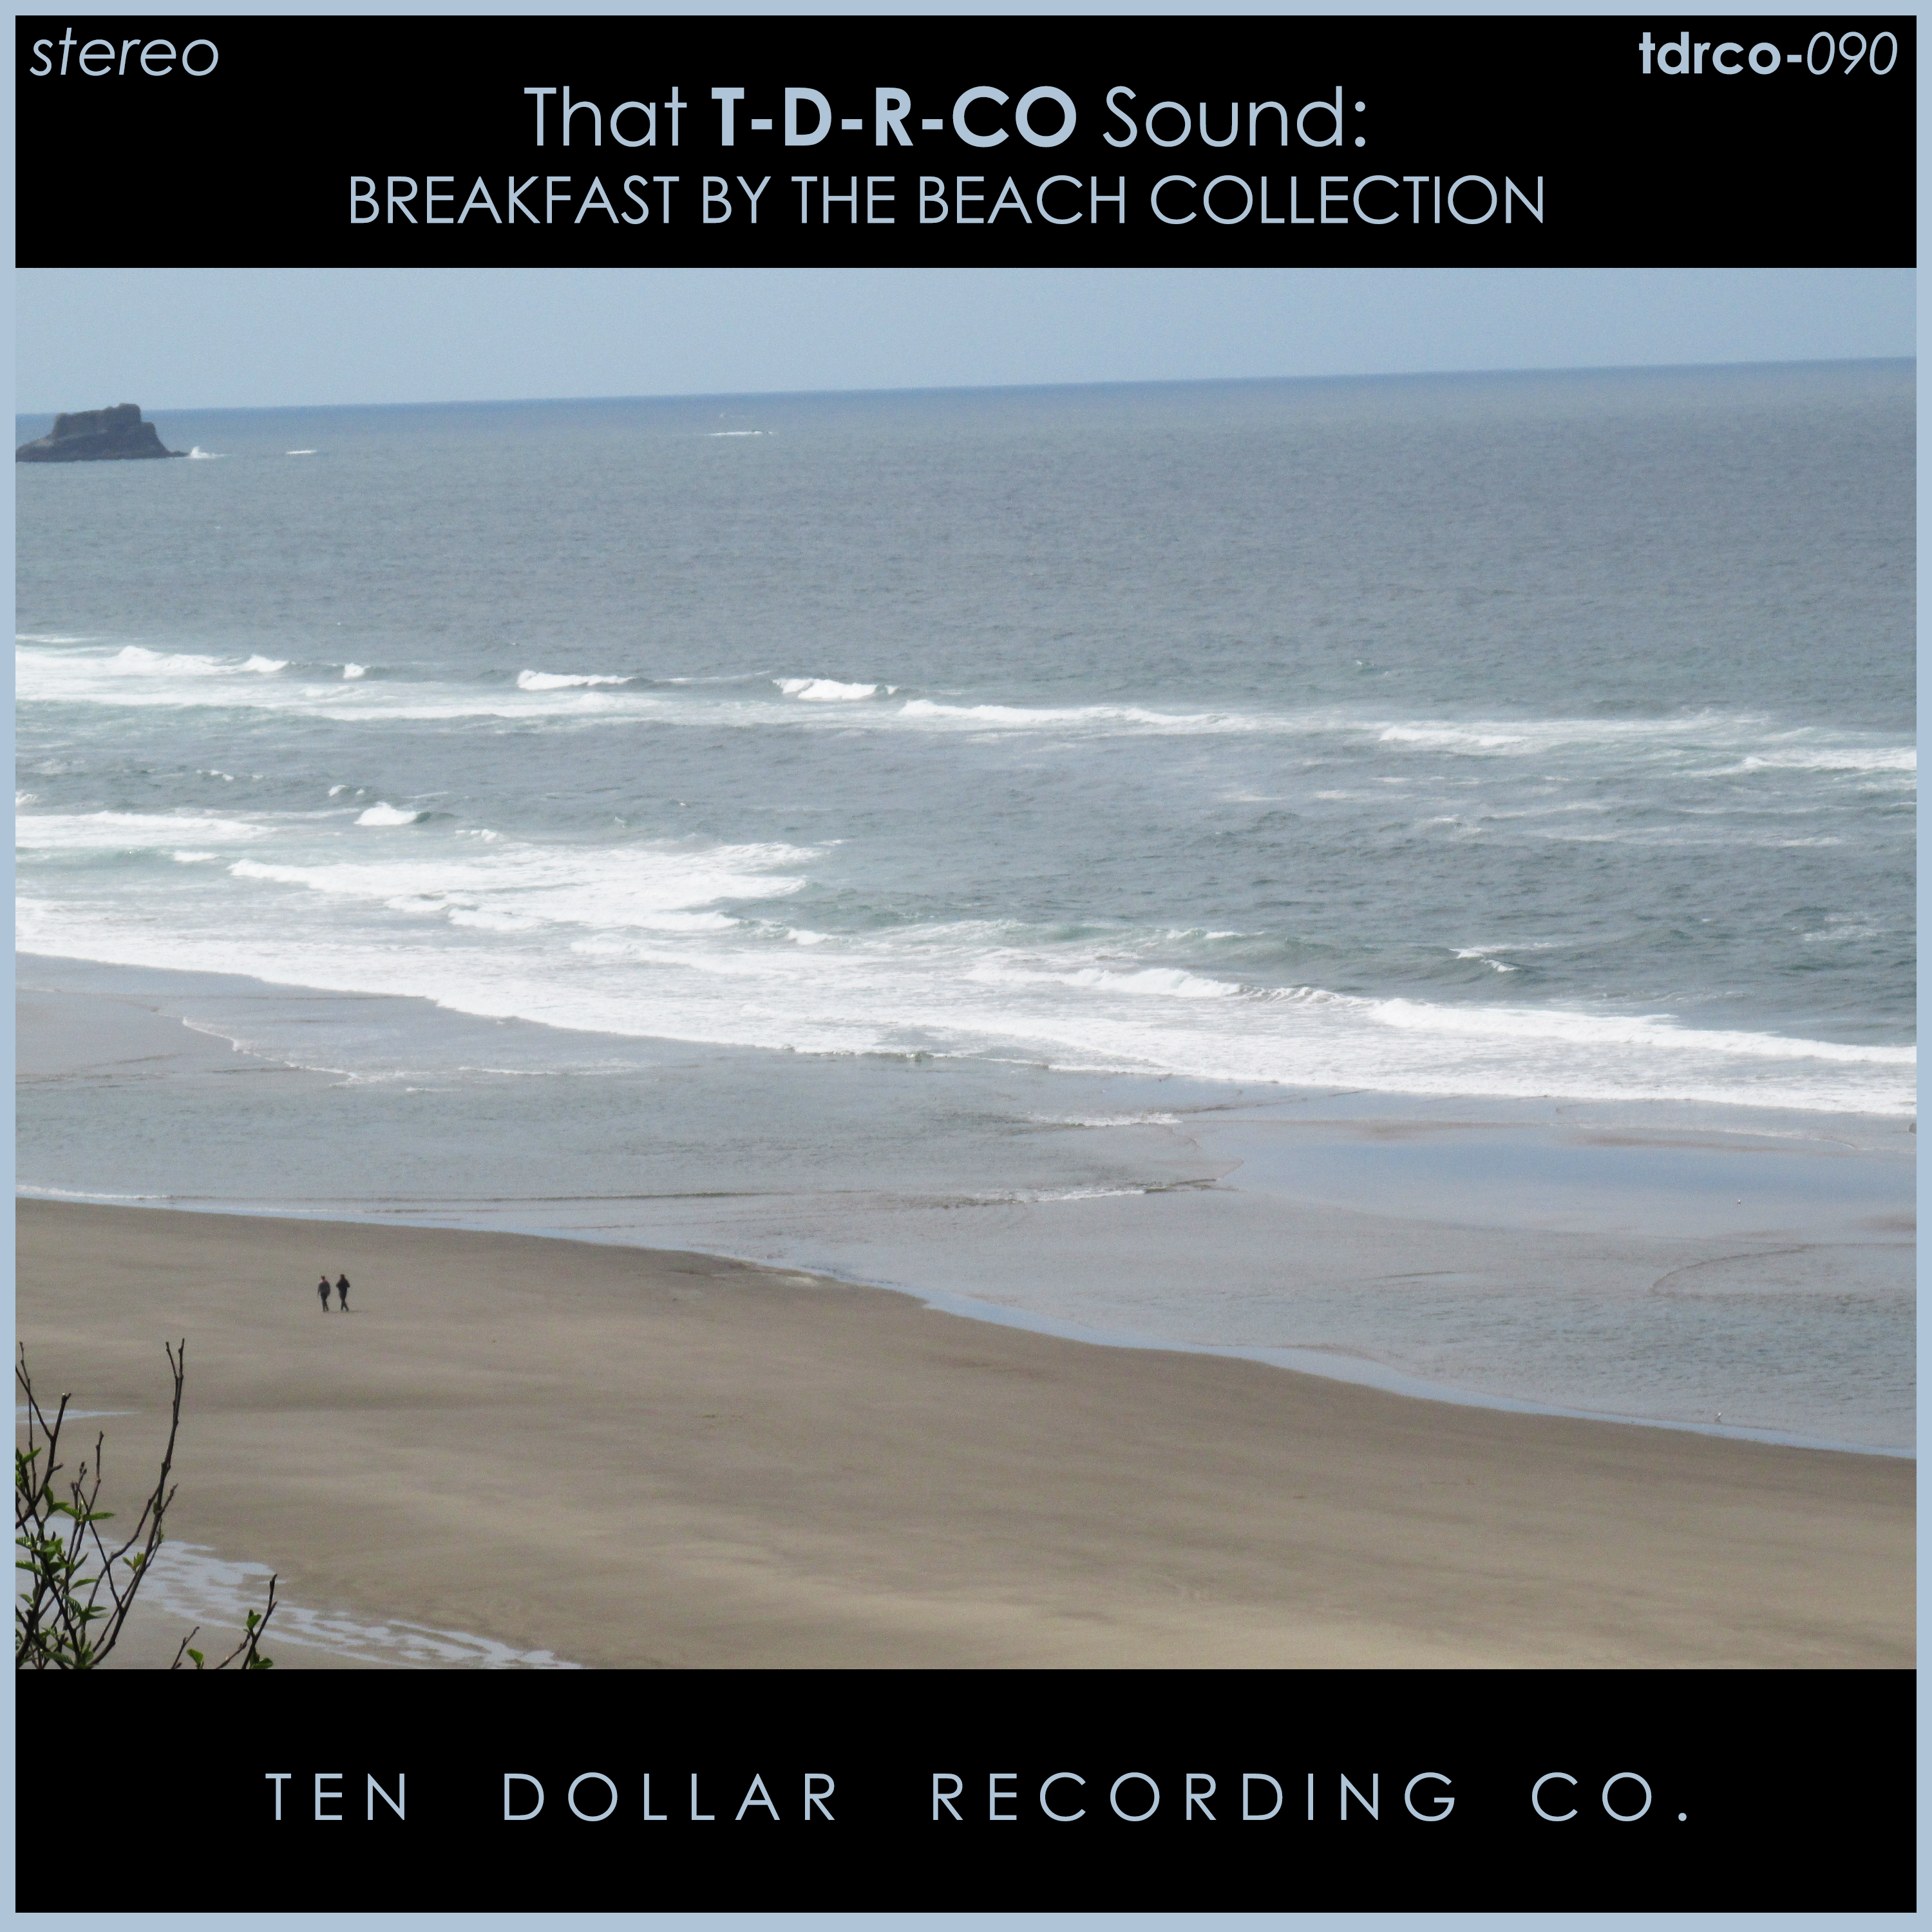 That T-D-R-Co Sound: Breakfast By The Beach Collection